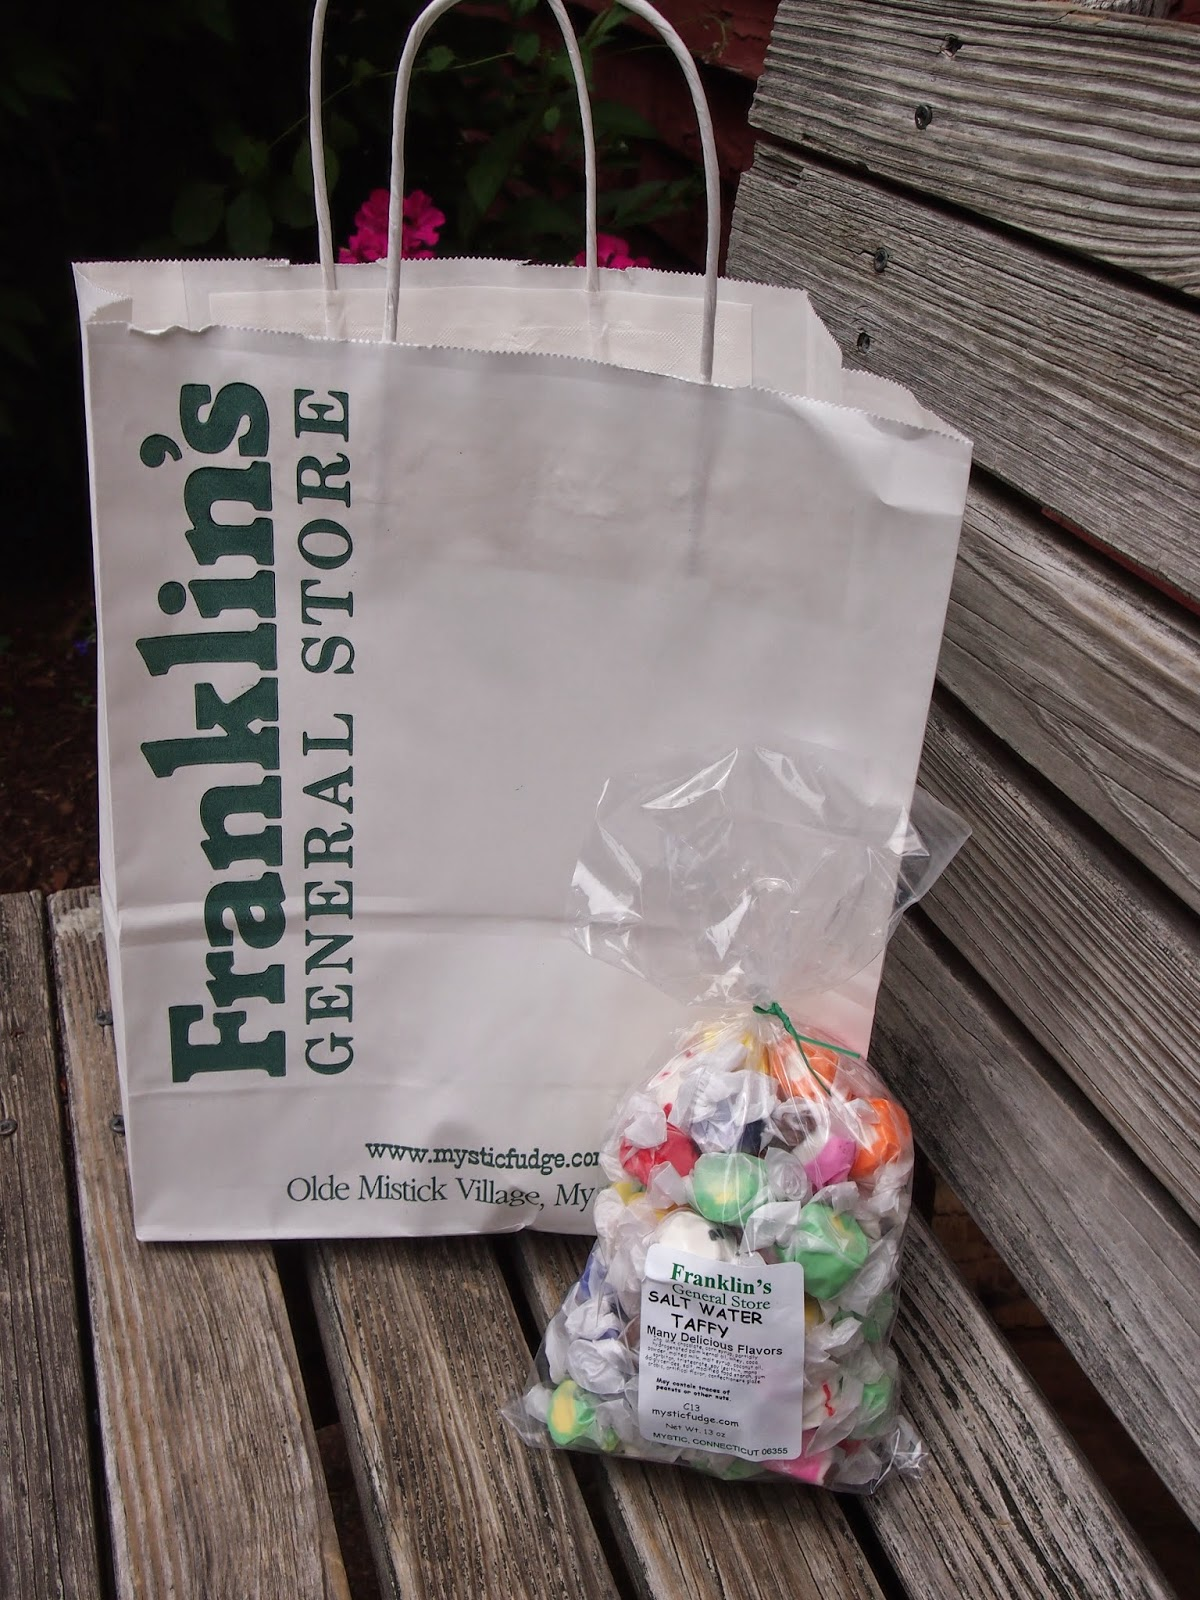 Salt Water Taffy from the General Store in the Olde Mystick Village